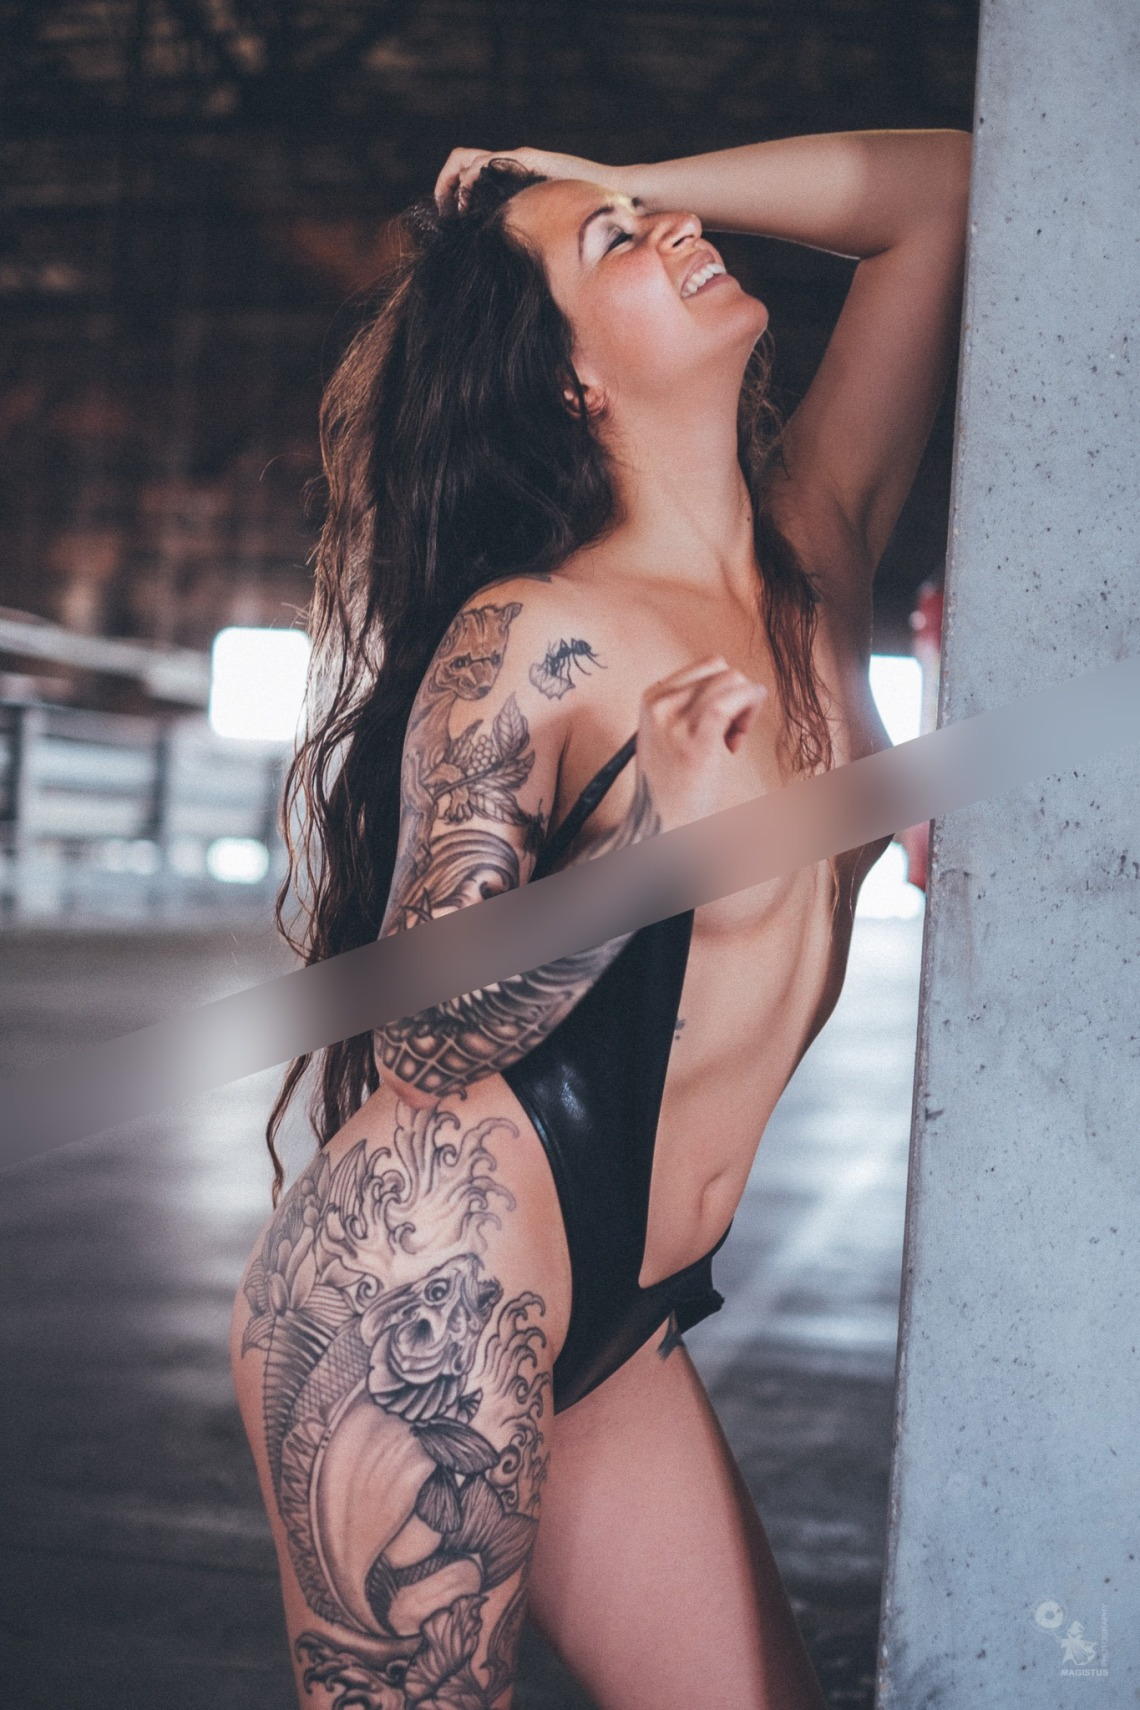 Censored sexy tattoo model is posing topless